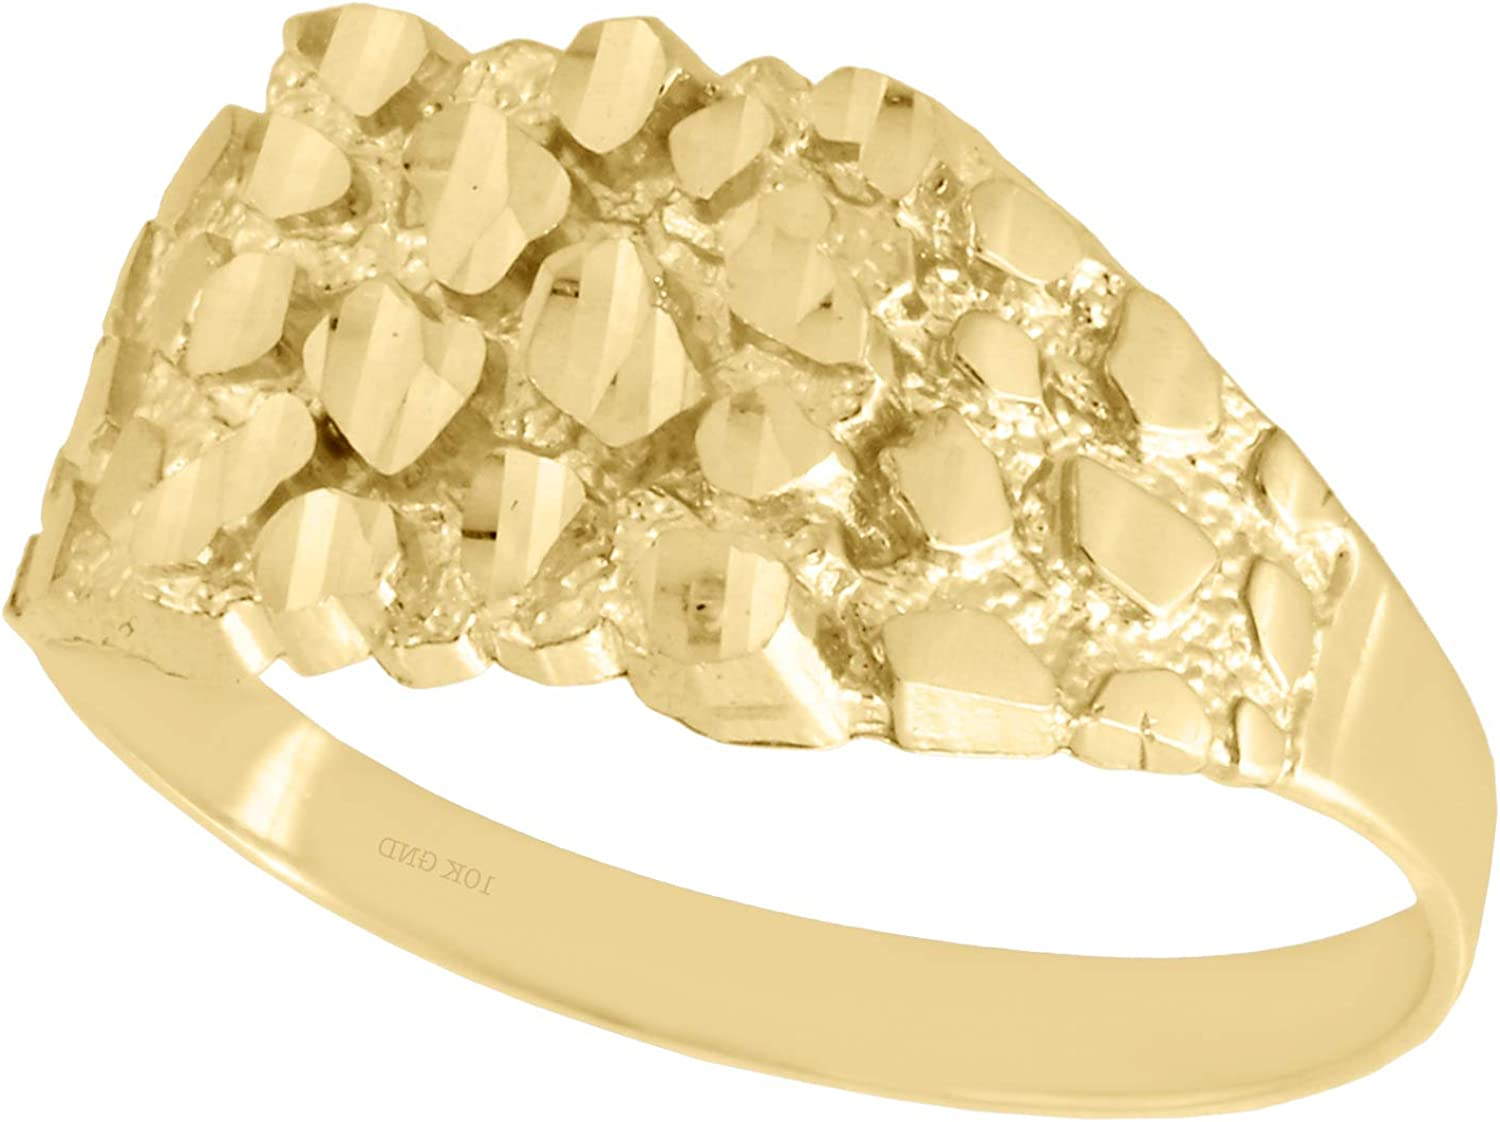 10mm Width Men/'s Real 10K Yellow Gold Small Nugget Style Square Pinky Ring